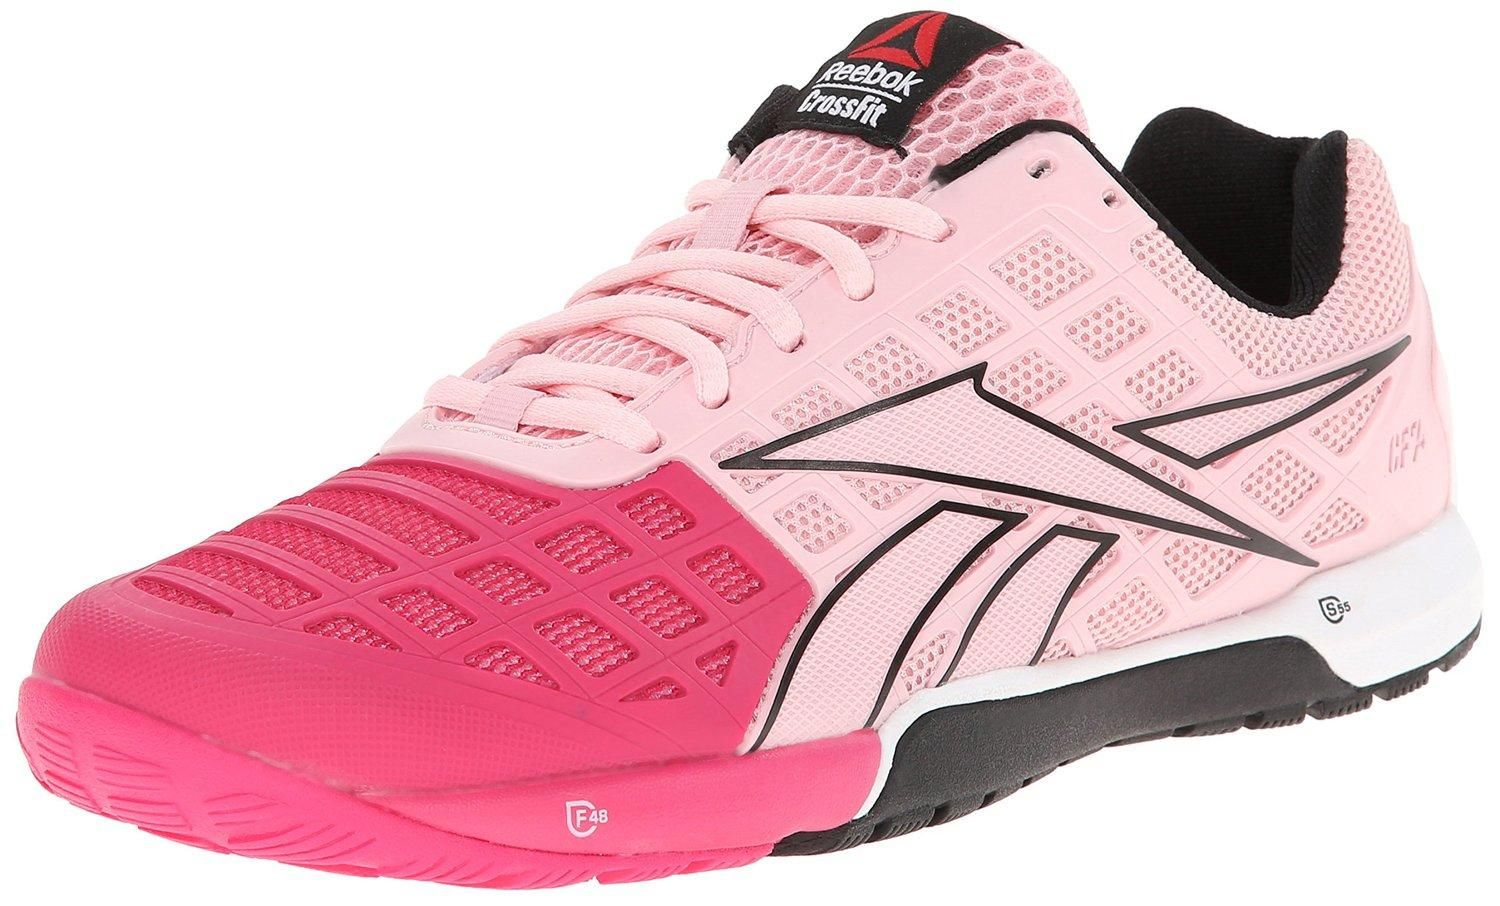 22c6cc183c09 Reebok Women s CrossFit Nano 4.0 Training Shoe Review